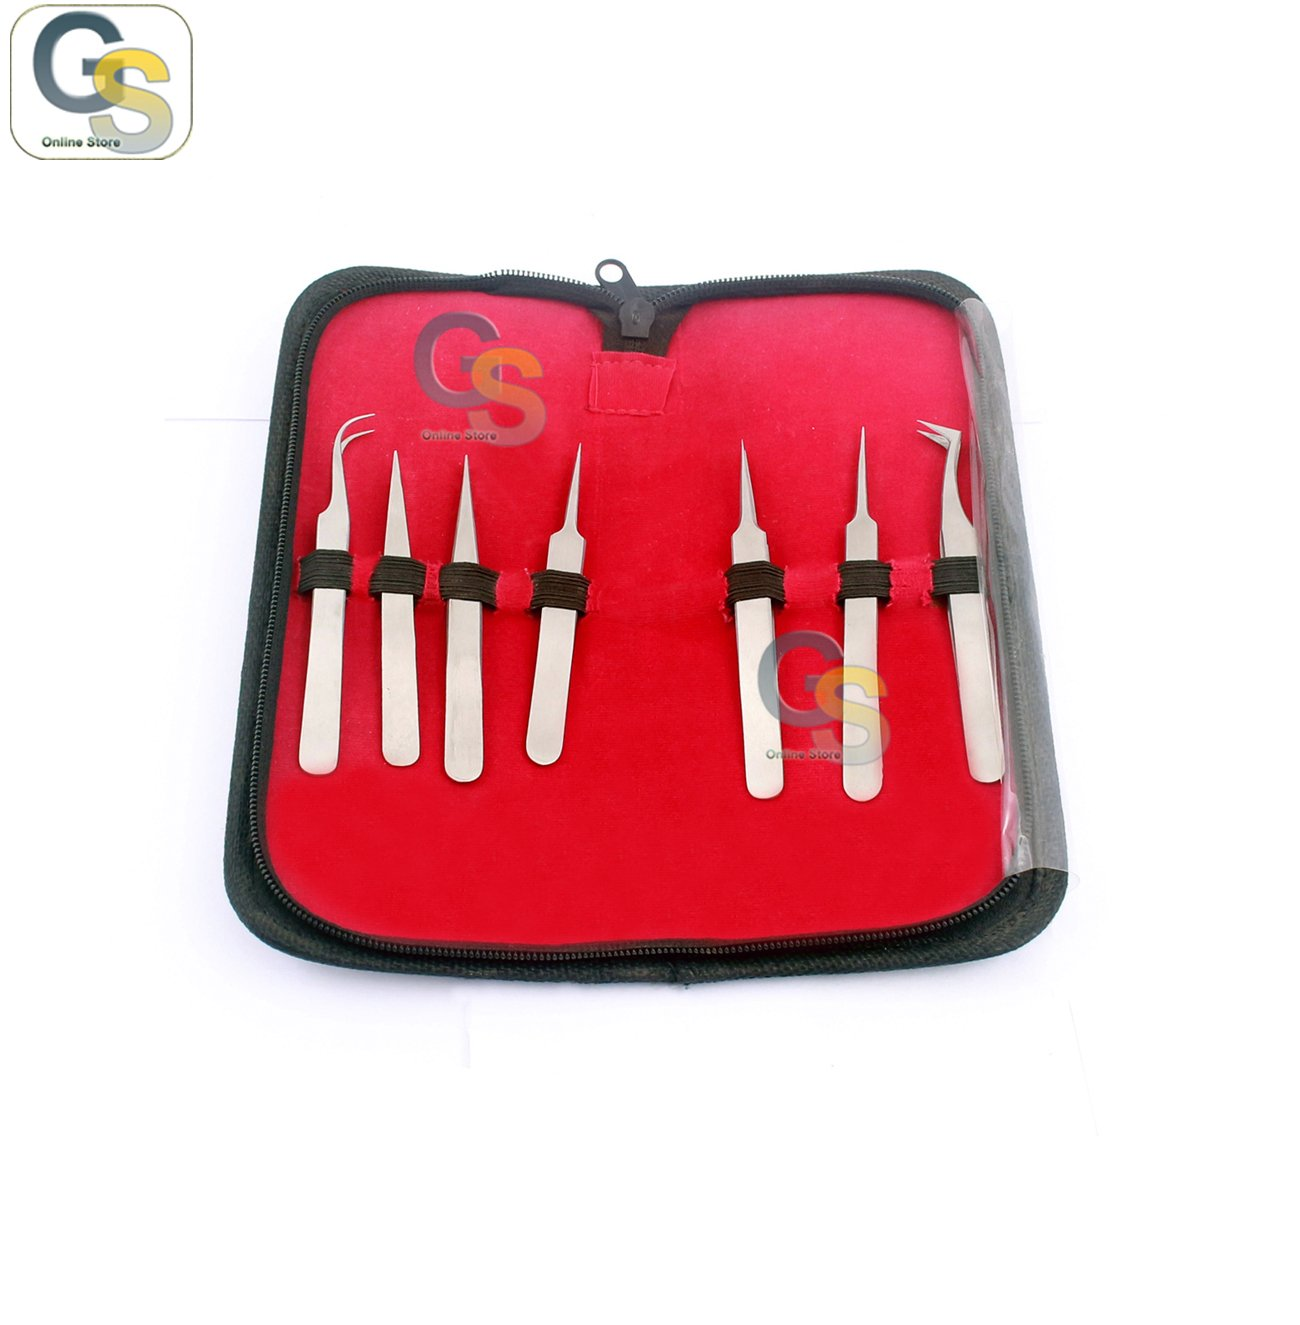 G.S SET OF 7PC PRECISION STAINLESS STEEL TWEEZERS FORCEPS - ELECTRONICS, BEADING, HOBBY BEST QUALITY